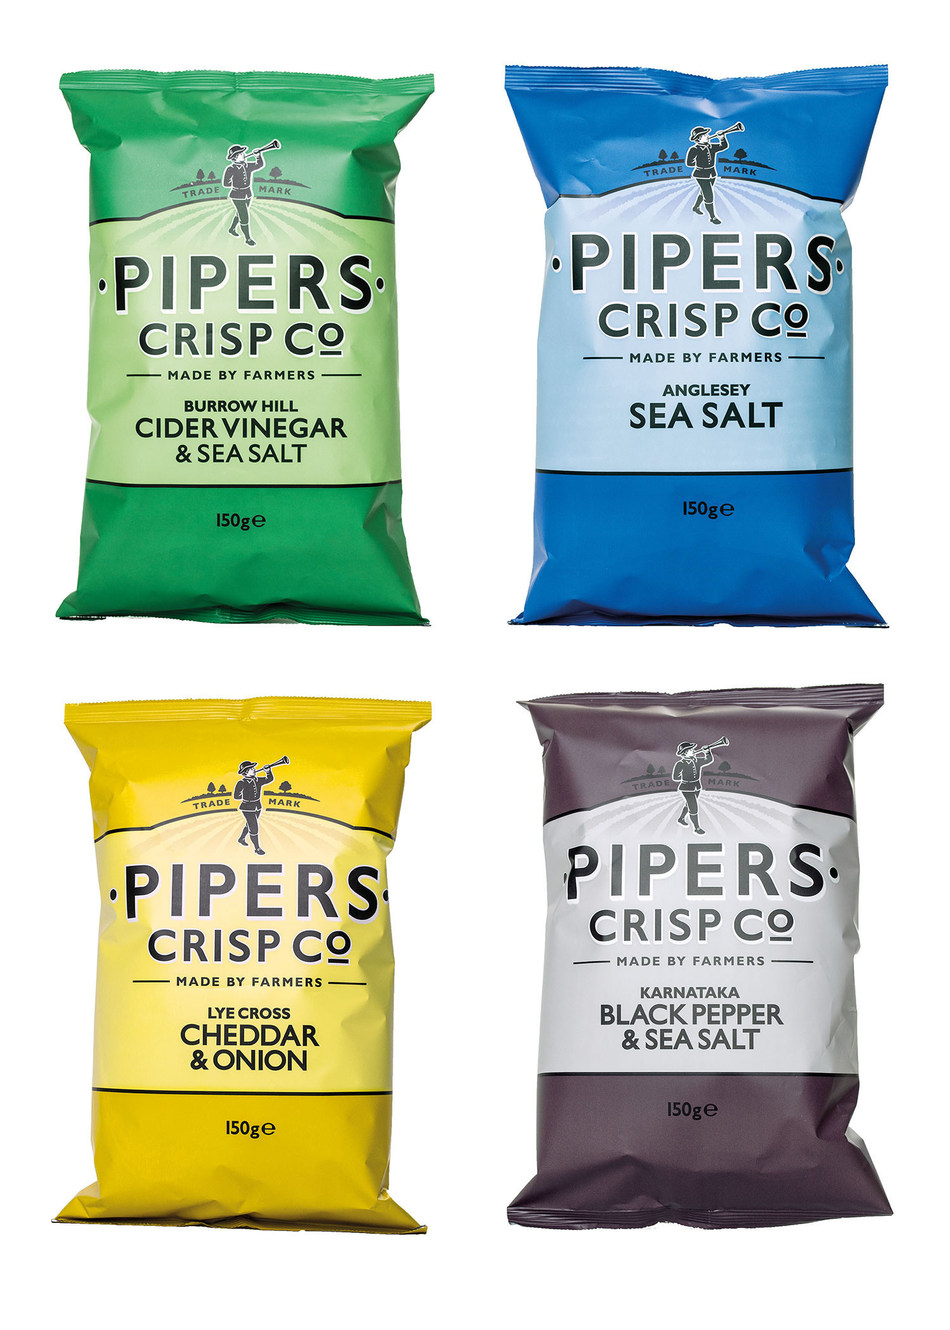 Award-winning British potato chip brand Pipers Crisp Co. has joined the Liberty Richter division of premiere specialty food marketer and distributor World Finer Foods. Credit: Pipers Crisp Co.